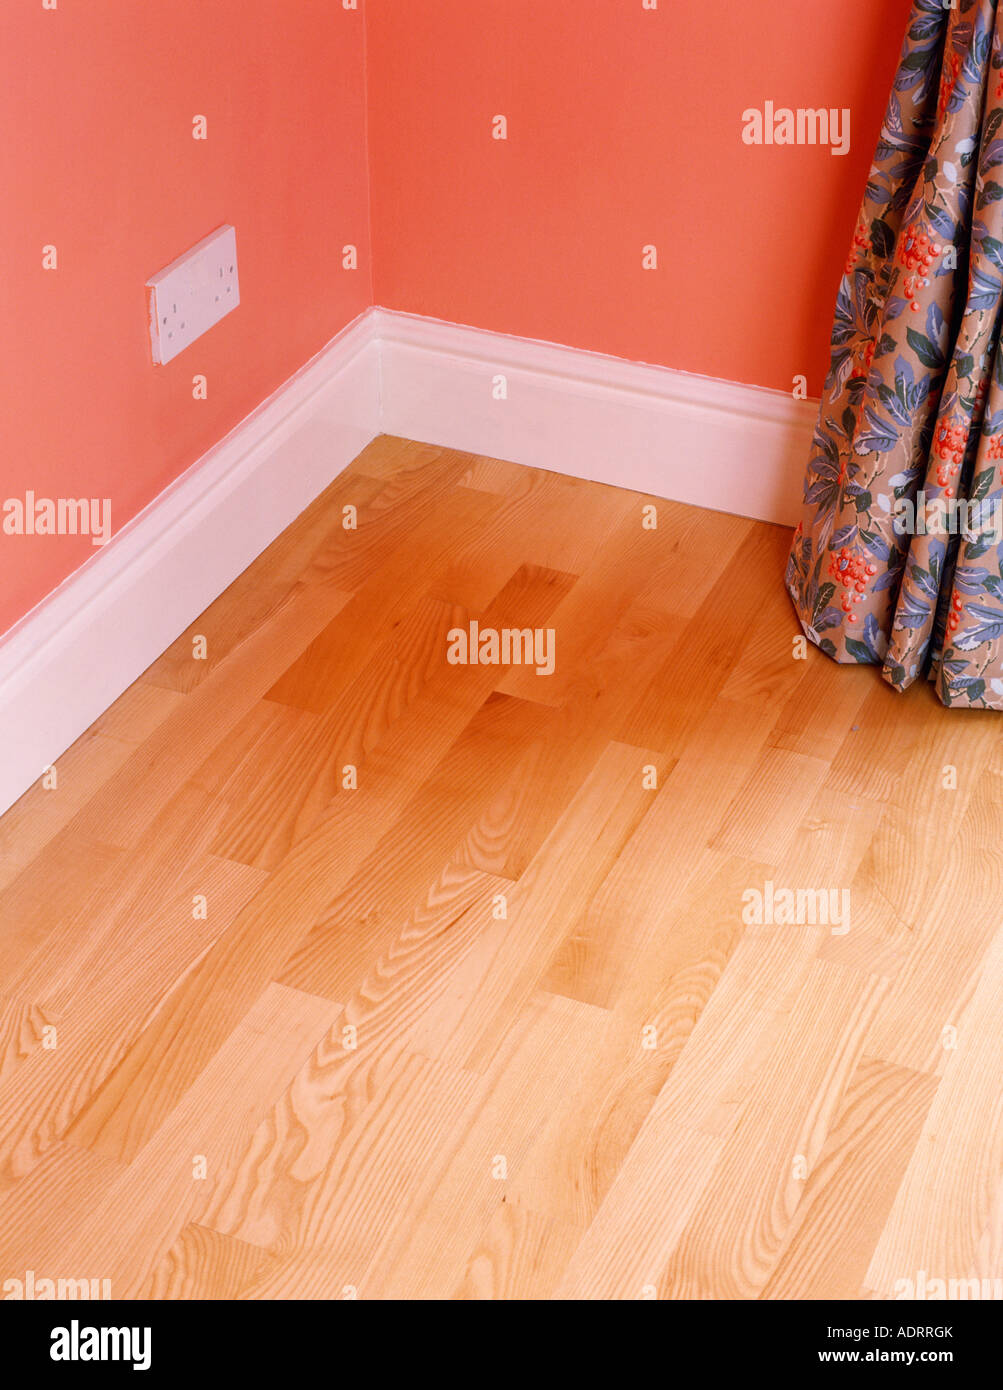 Corner Of Room With Laminate Wood Floor And White Skirting Board Below Red Wall